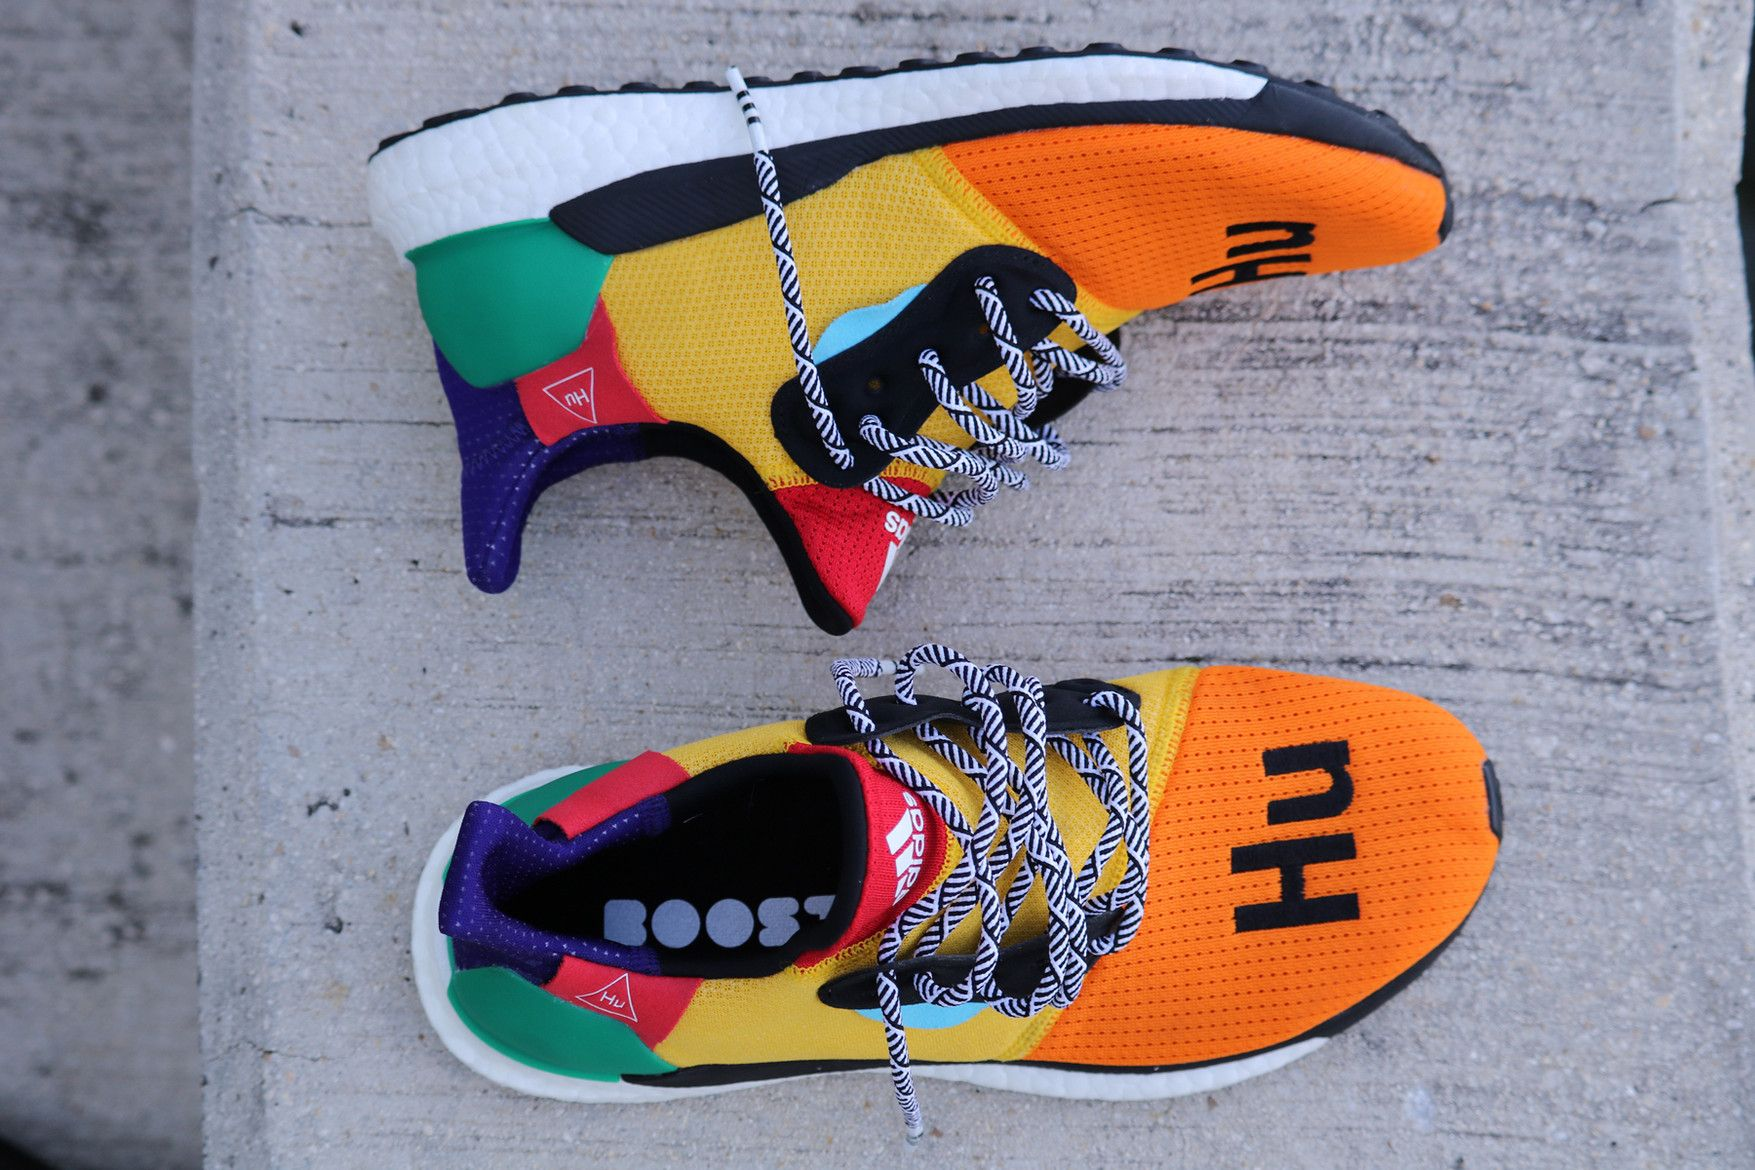 72ed78b5428 An On-Foot Look at the Pharrell x adidas Solar Hu Glide St | Shoes ...